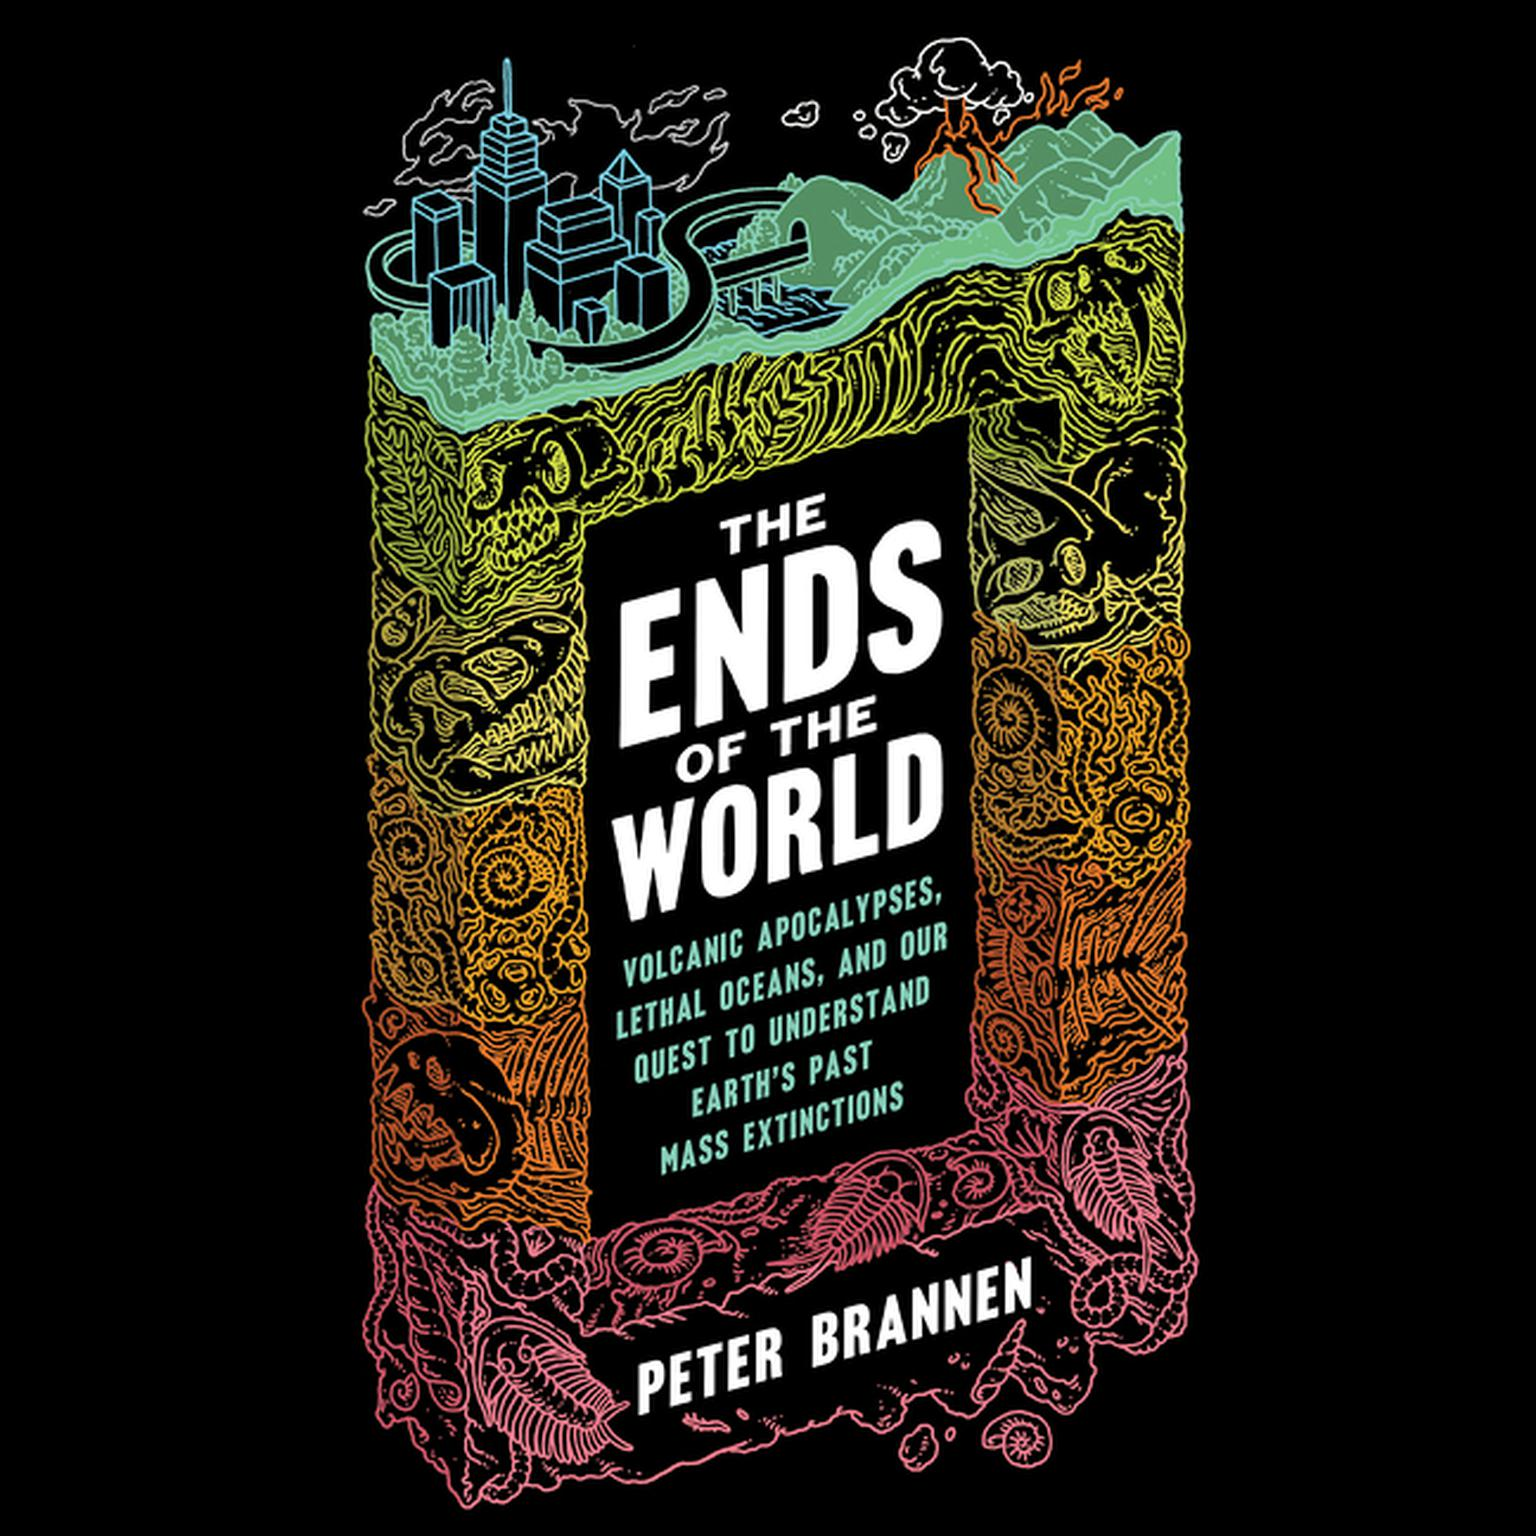 Printable The Ends of the World: Volcanic Apocalypses, Lethal Oceans, and Our Quest to Understand Earth's Past Mass Extinctions Audiobook Cover Art